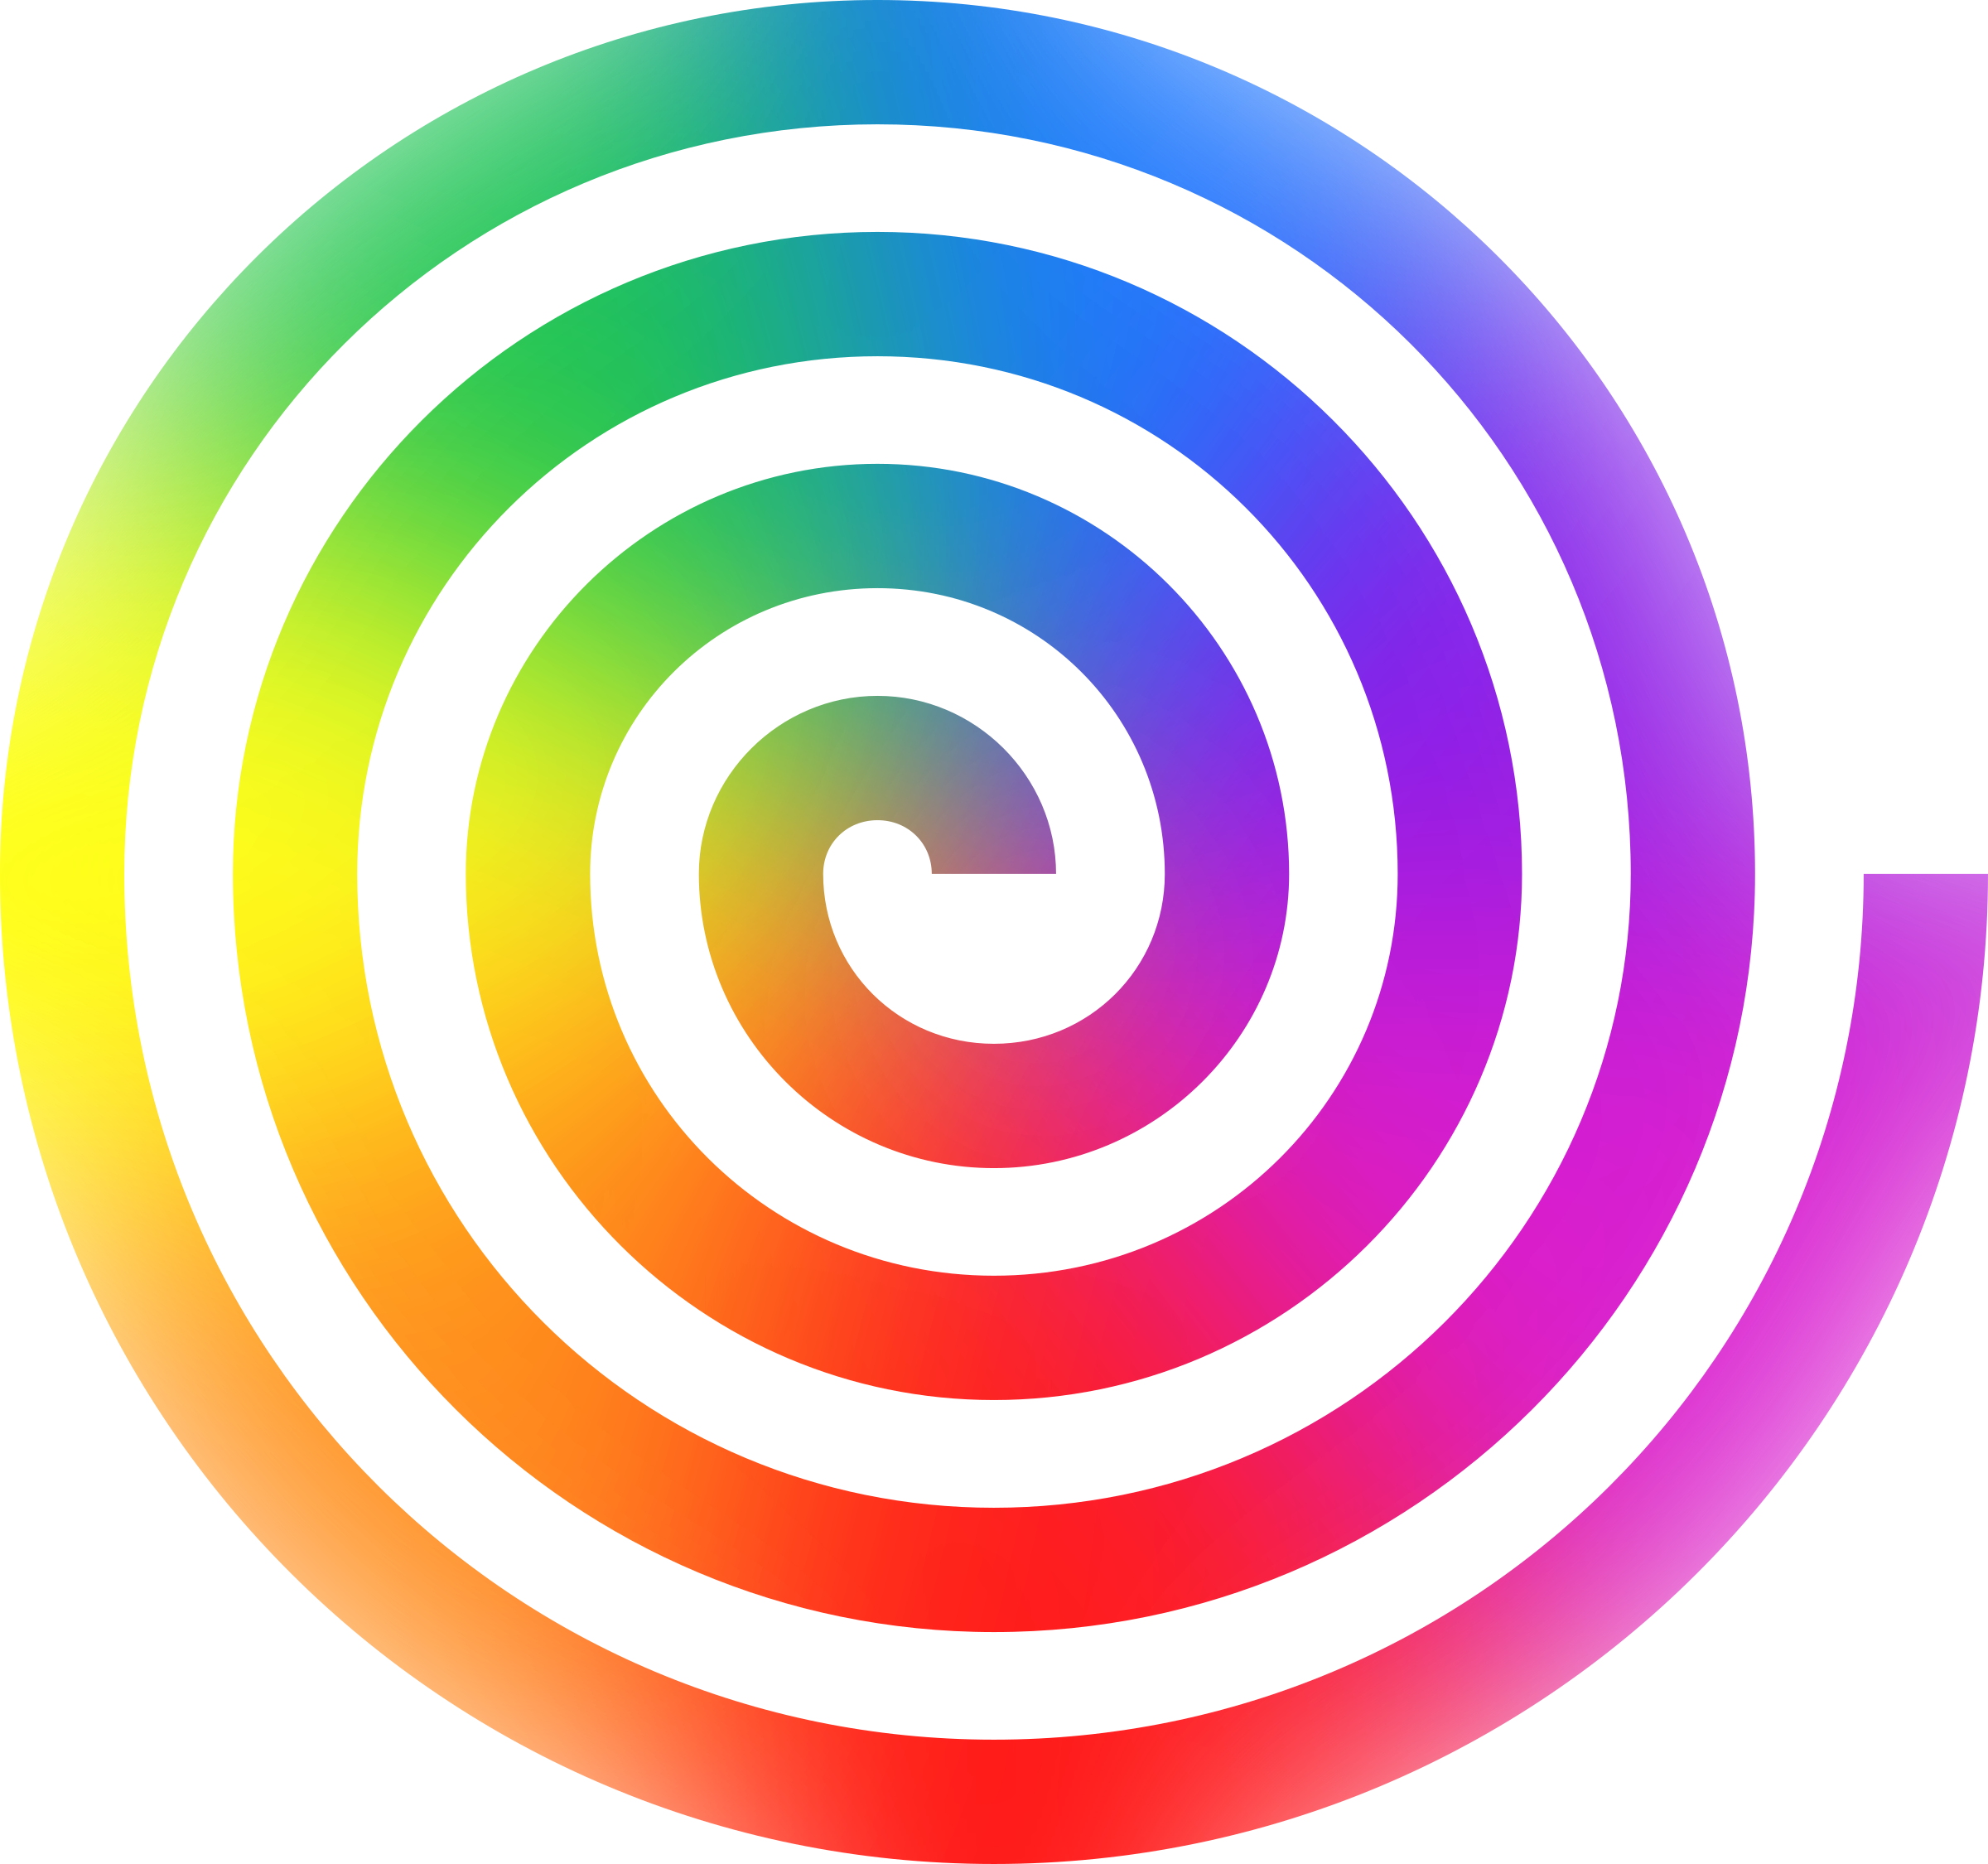 clipart rainbow spiral rh openclipart org swirl clipart swirl clip art generator